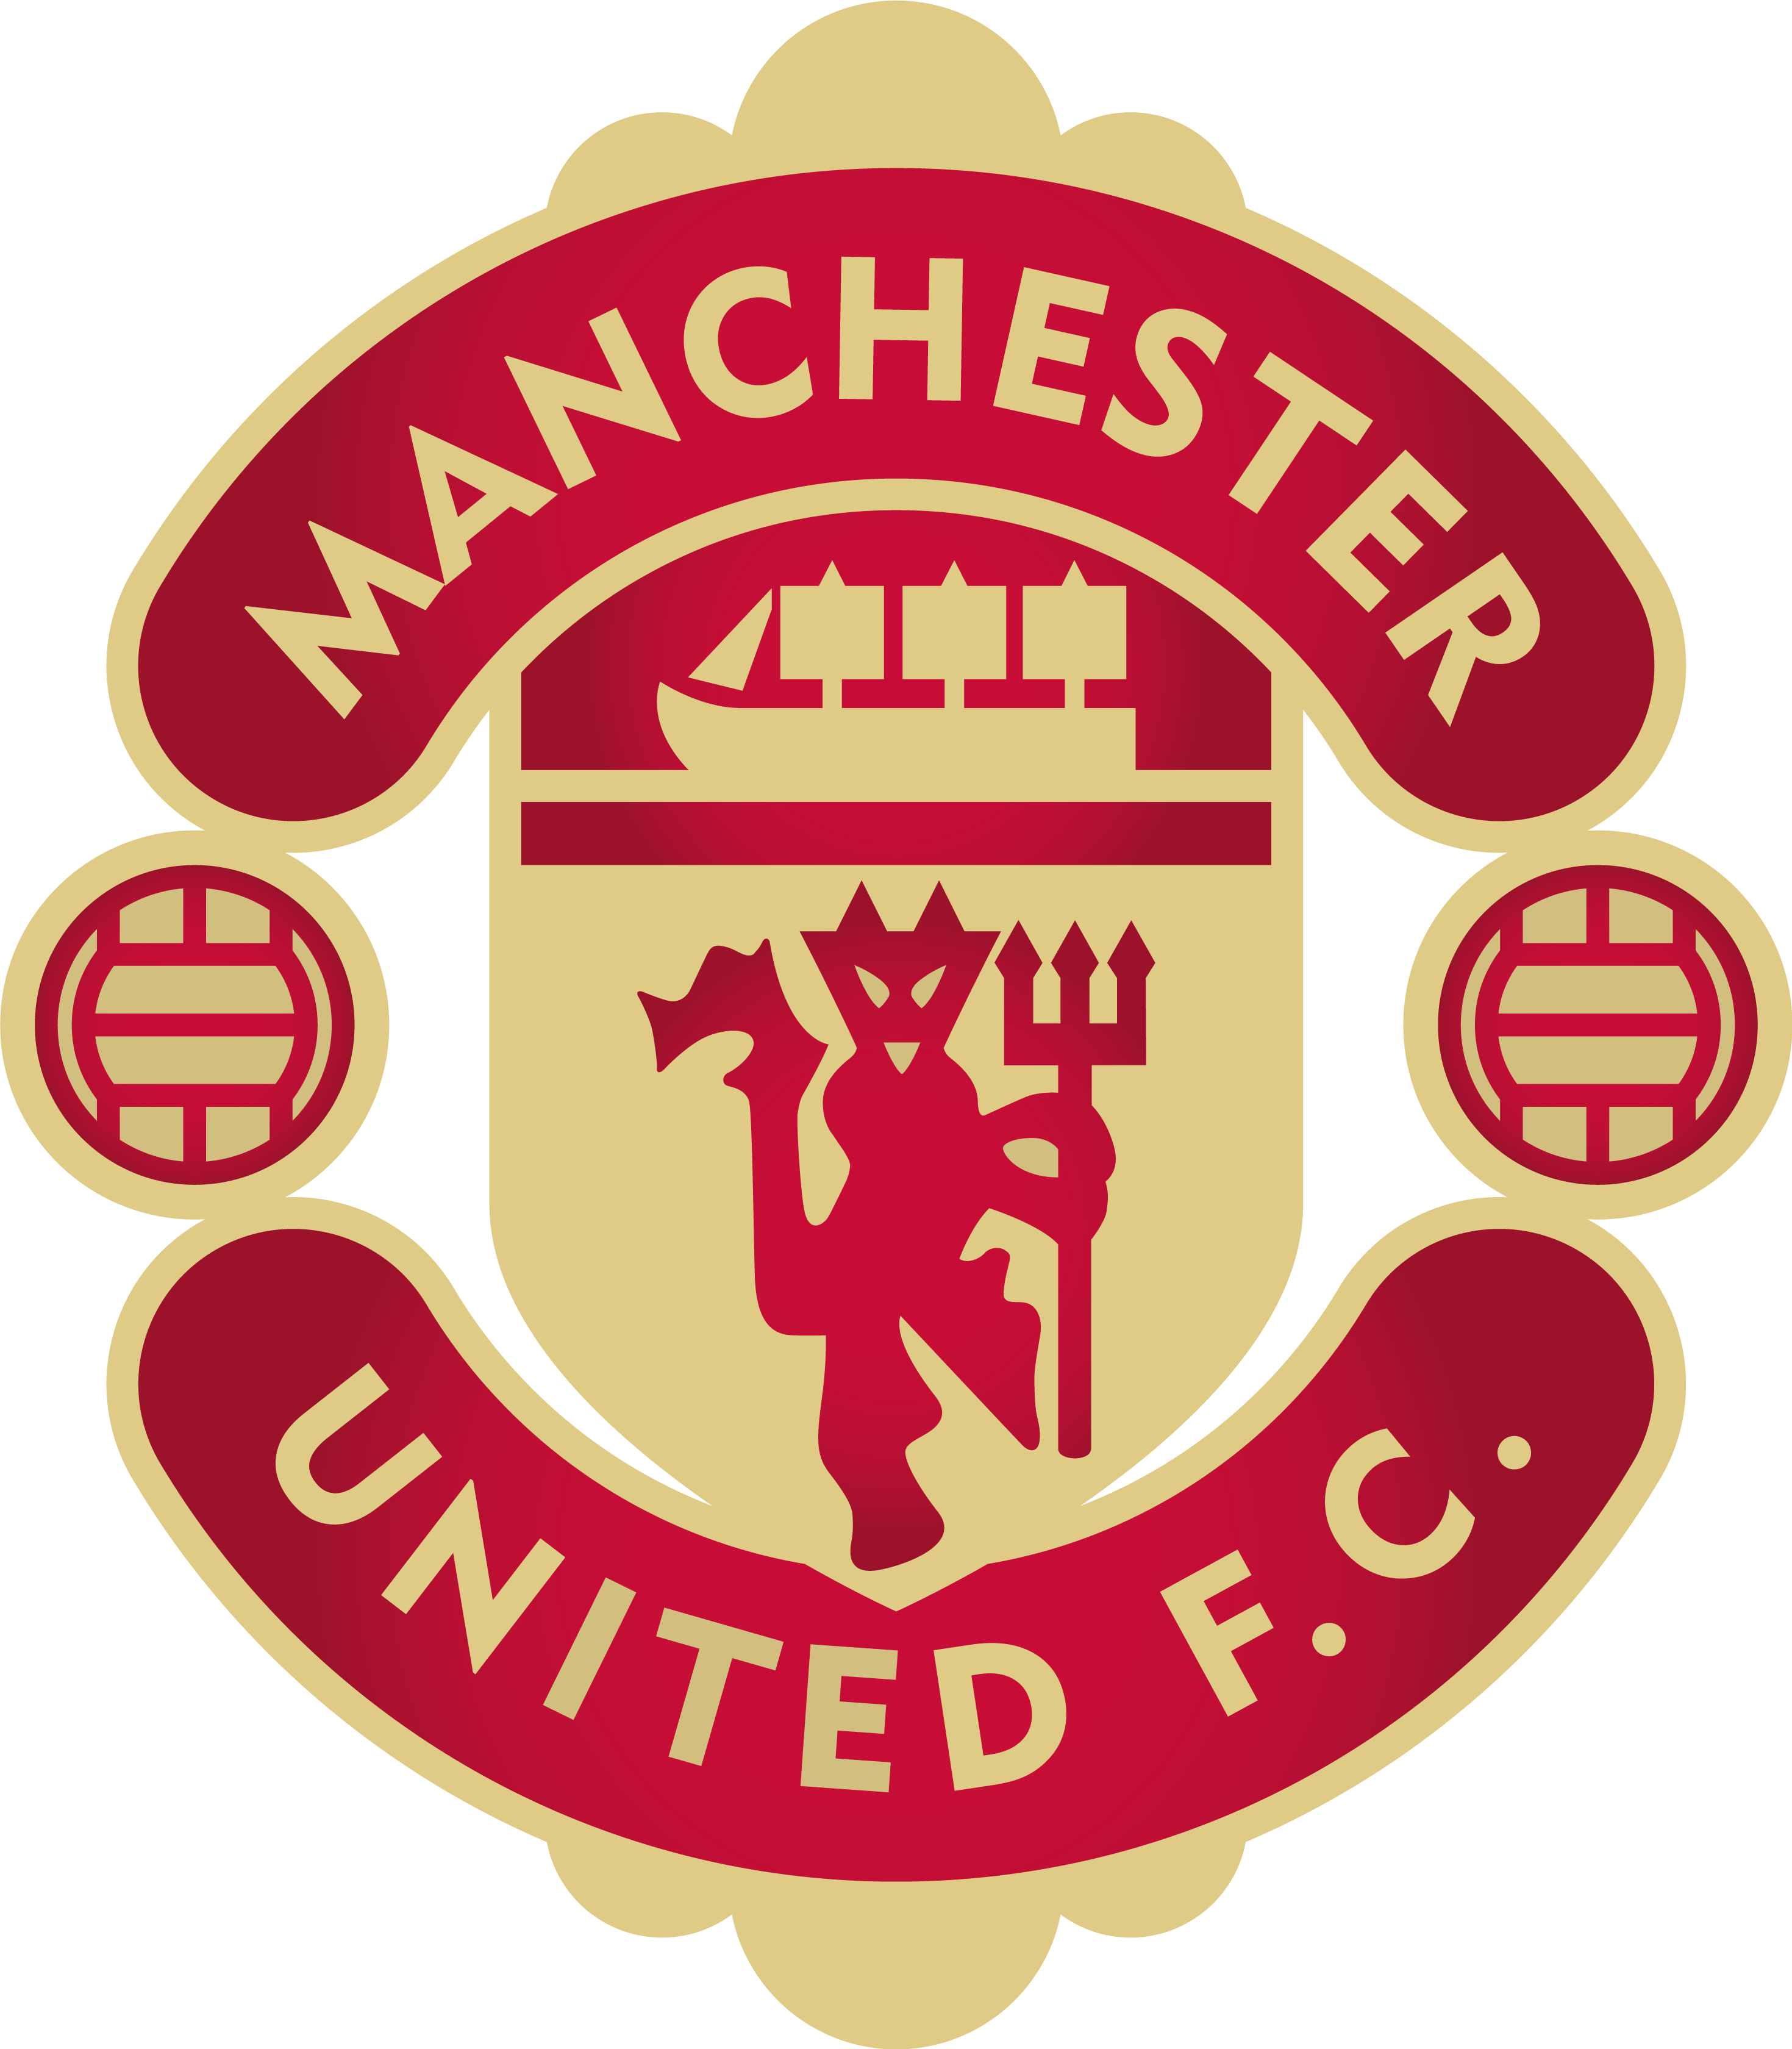 Download Ficheirowest Ham United Fc Logopng Ndash Wikip 233dia Logo Do Manchester United Png Png Image With No Background Pngkey Com